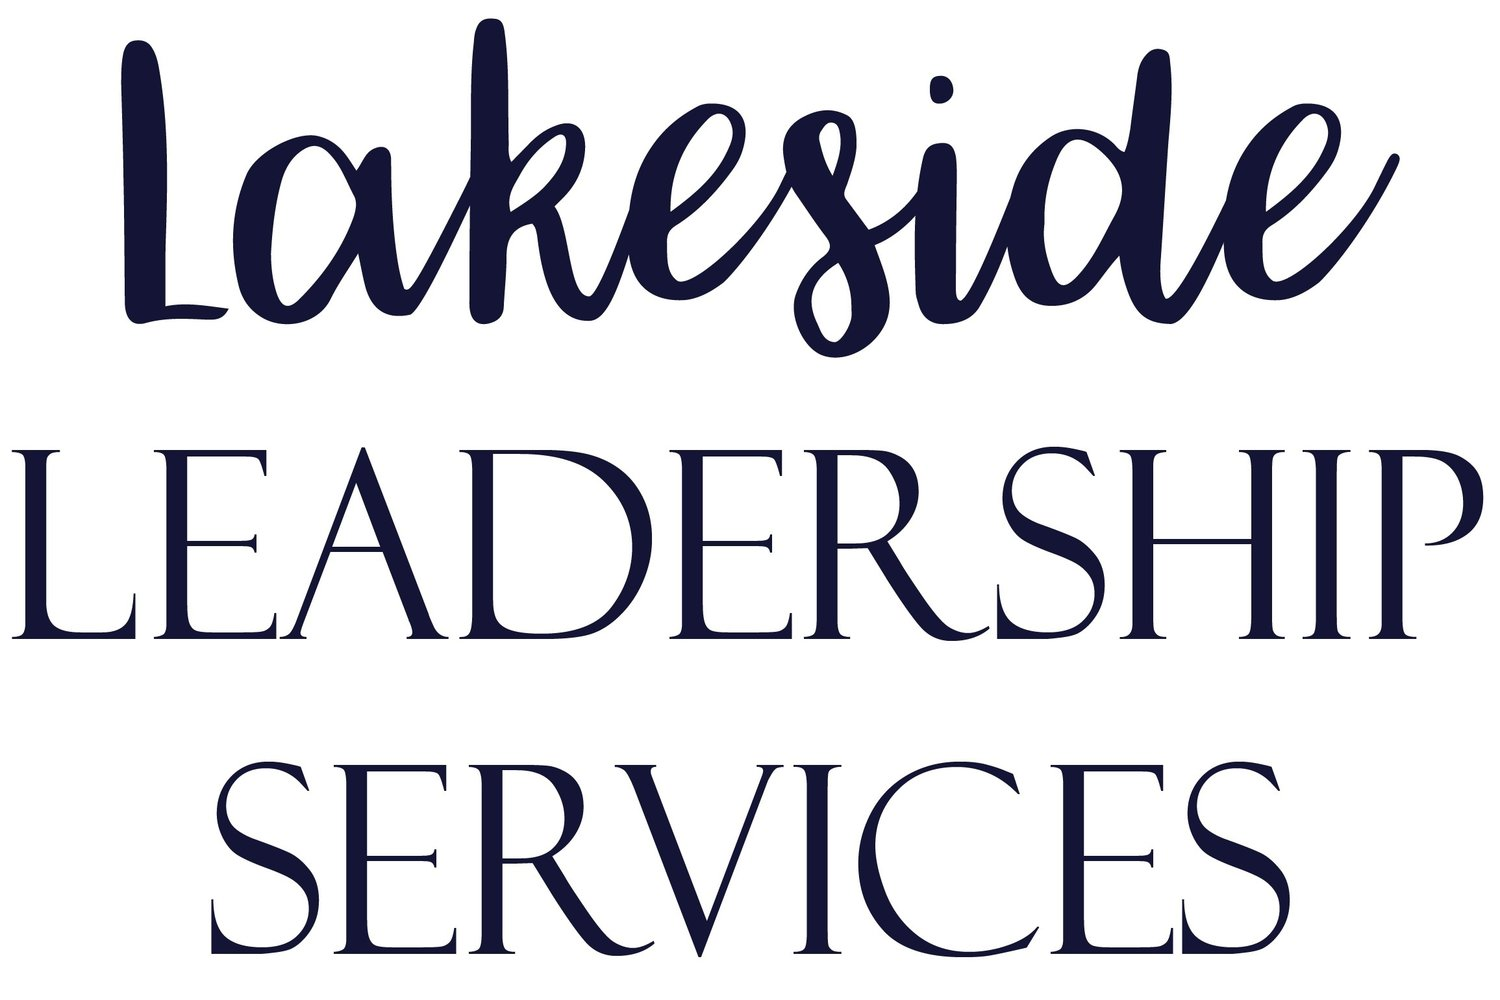 Lakeside Leadership Services